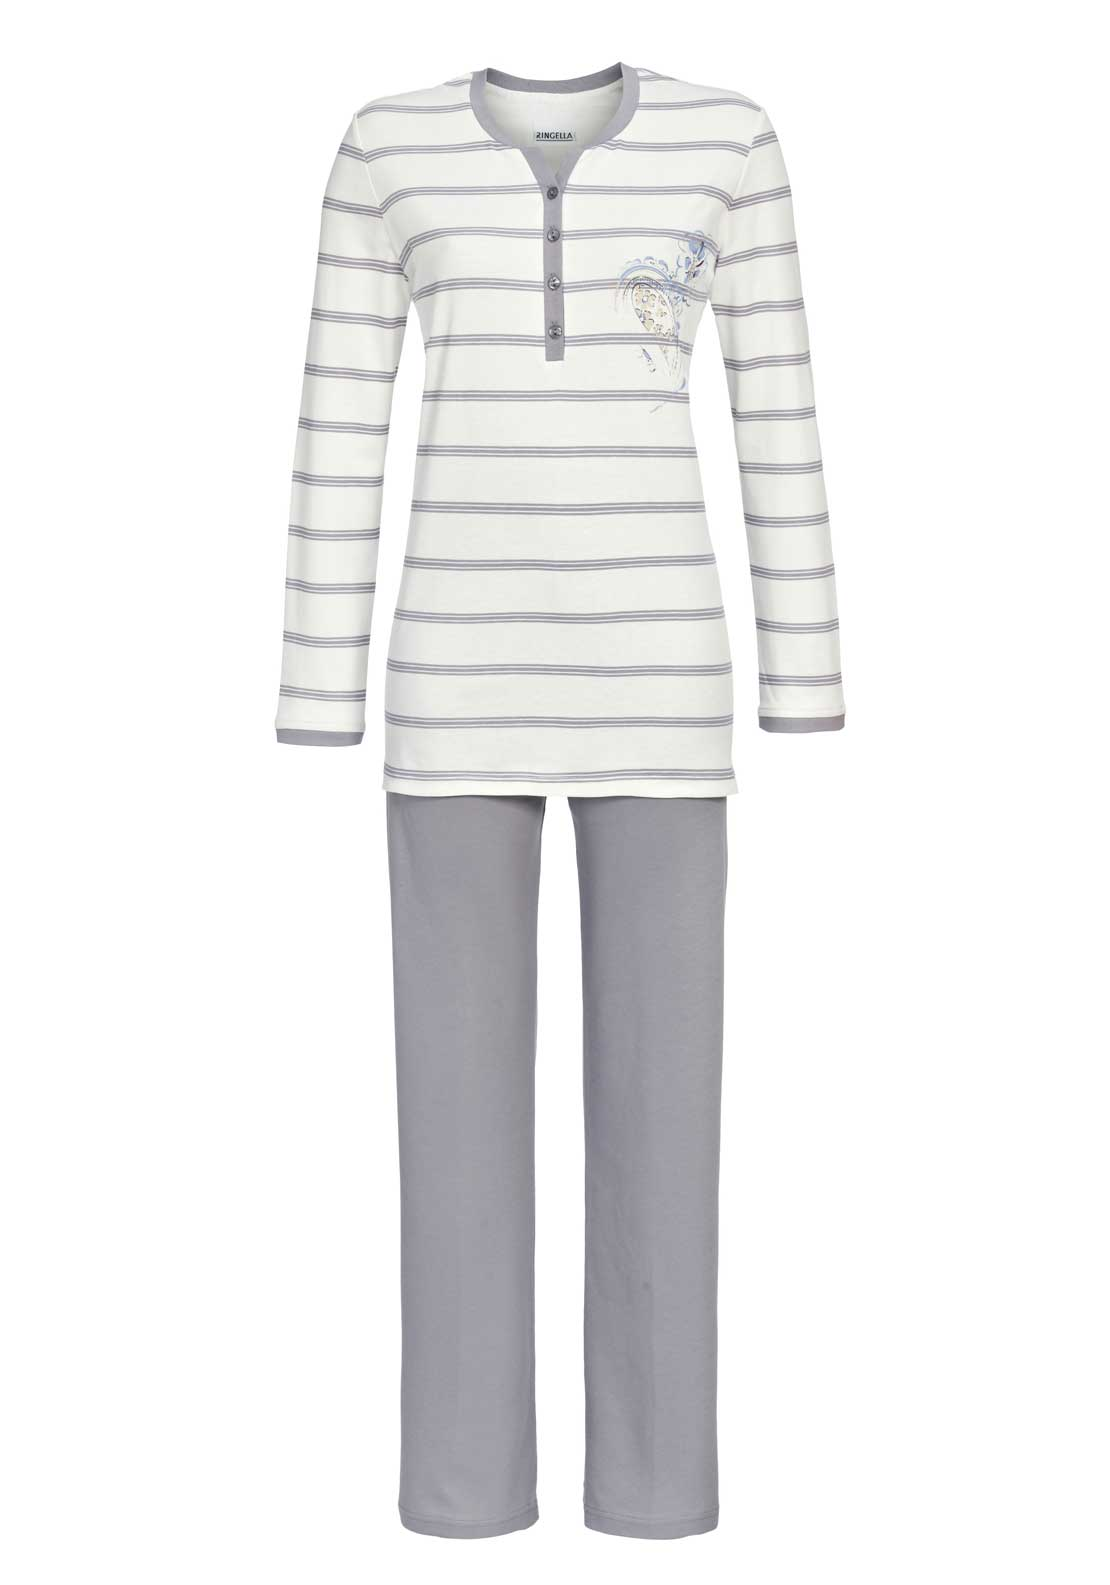 Ringella Striped Cotton Pyjama Set, White and Grey